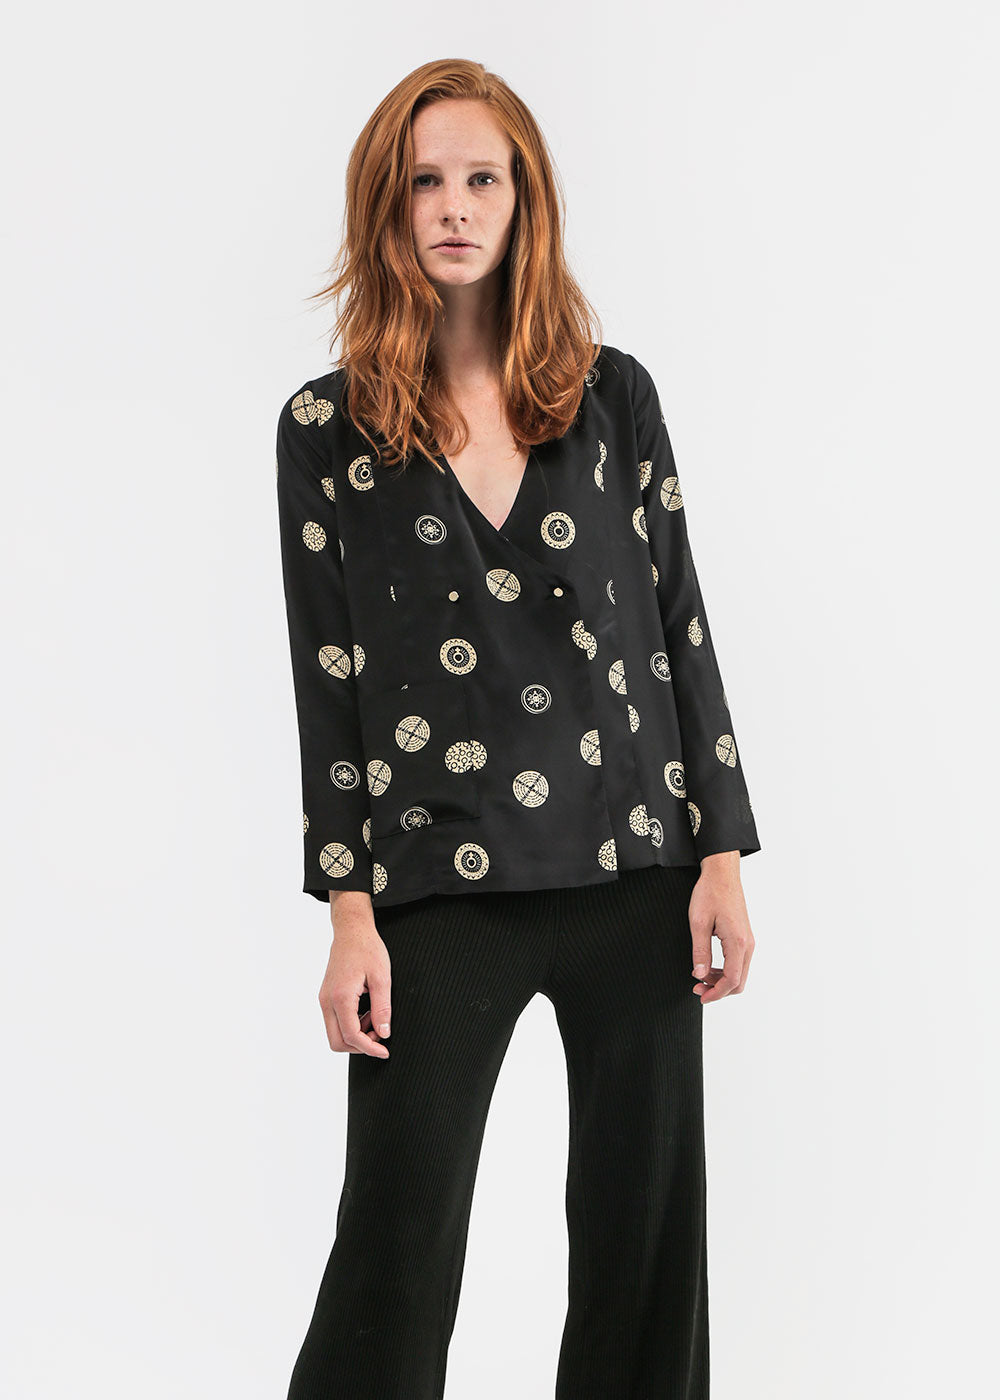 Suzanne Rae Button Up Blazer — New Classics Studios